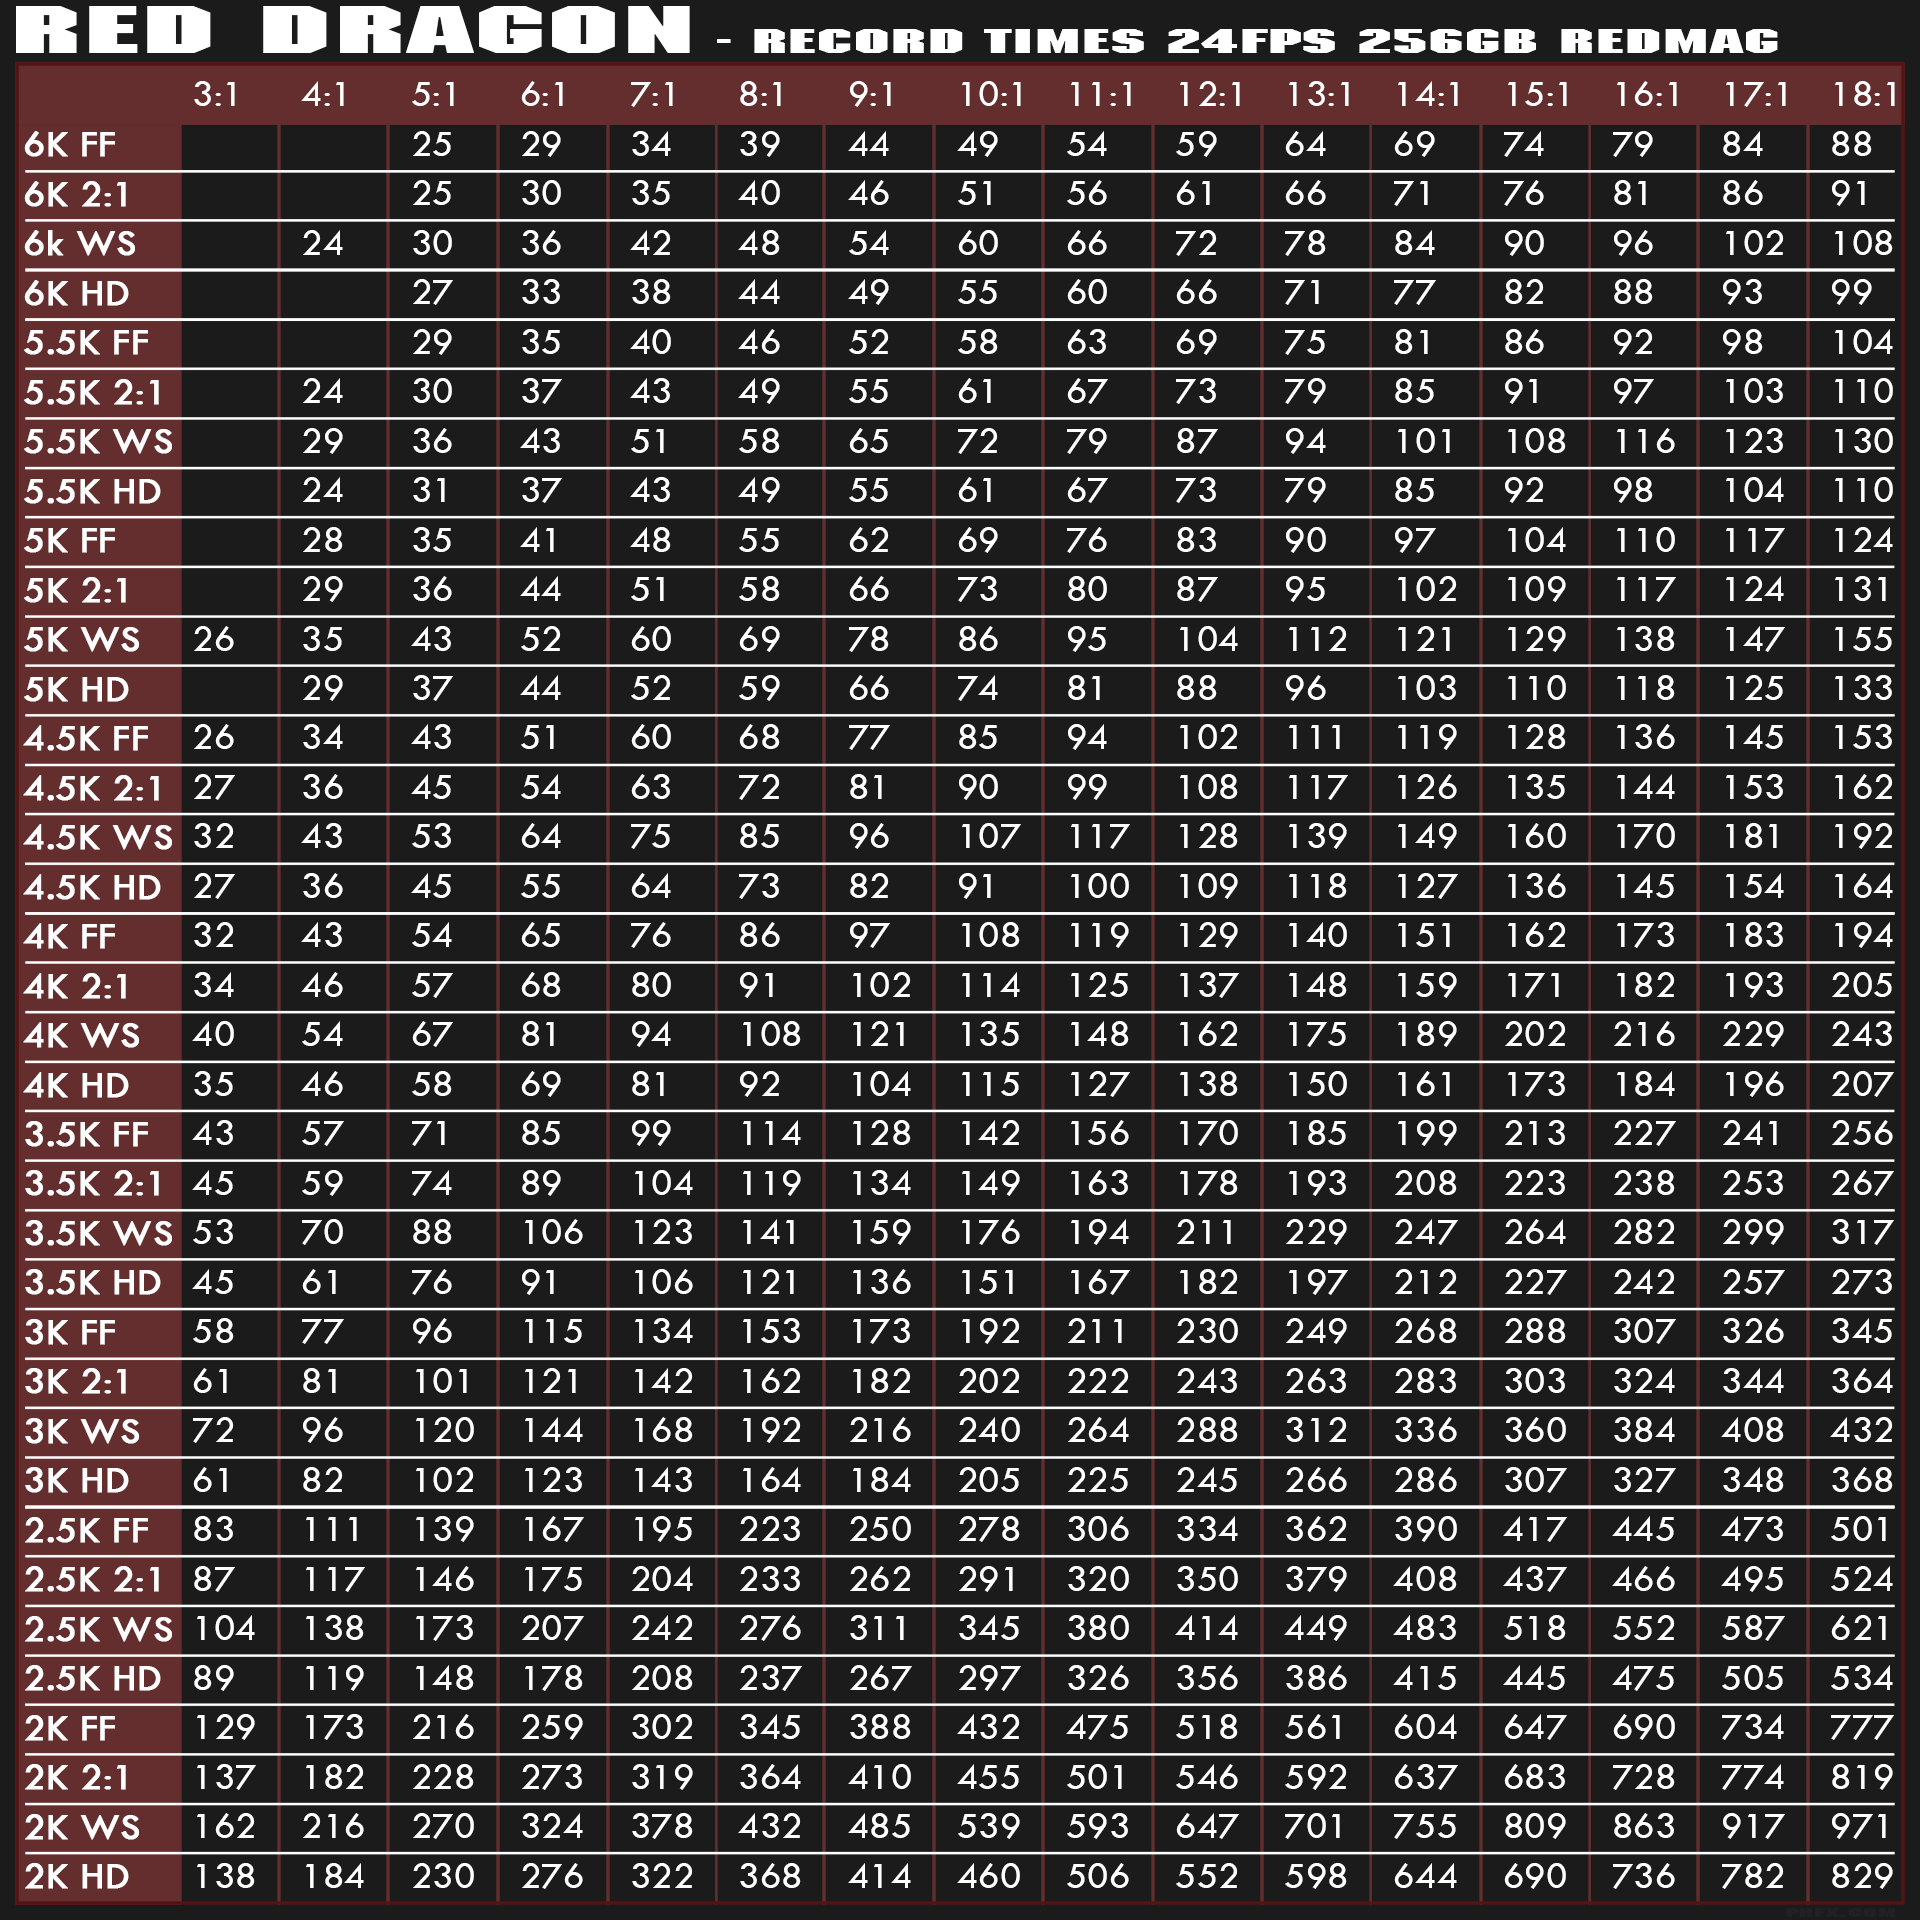 RED Dragon Record Times